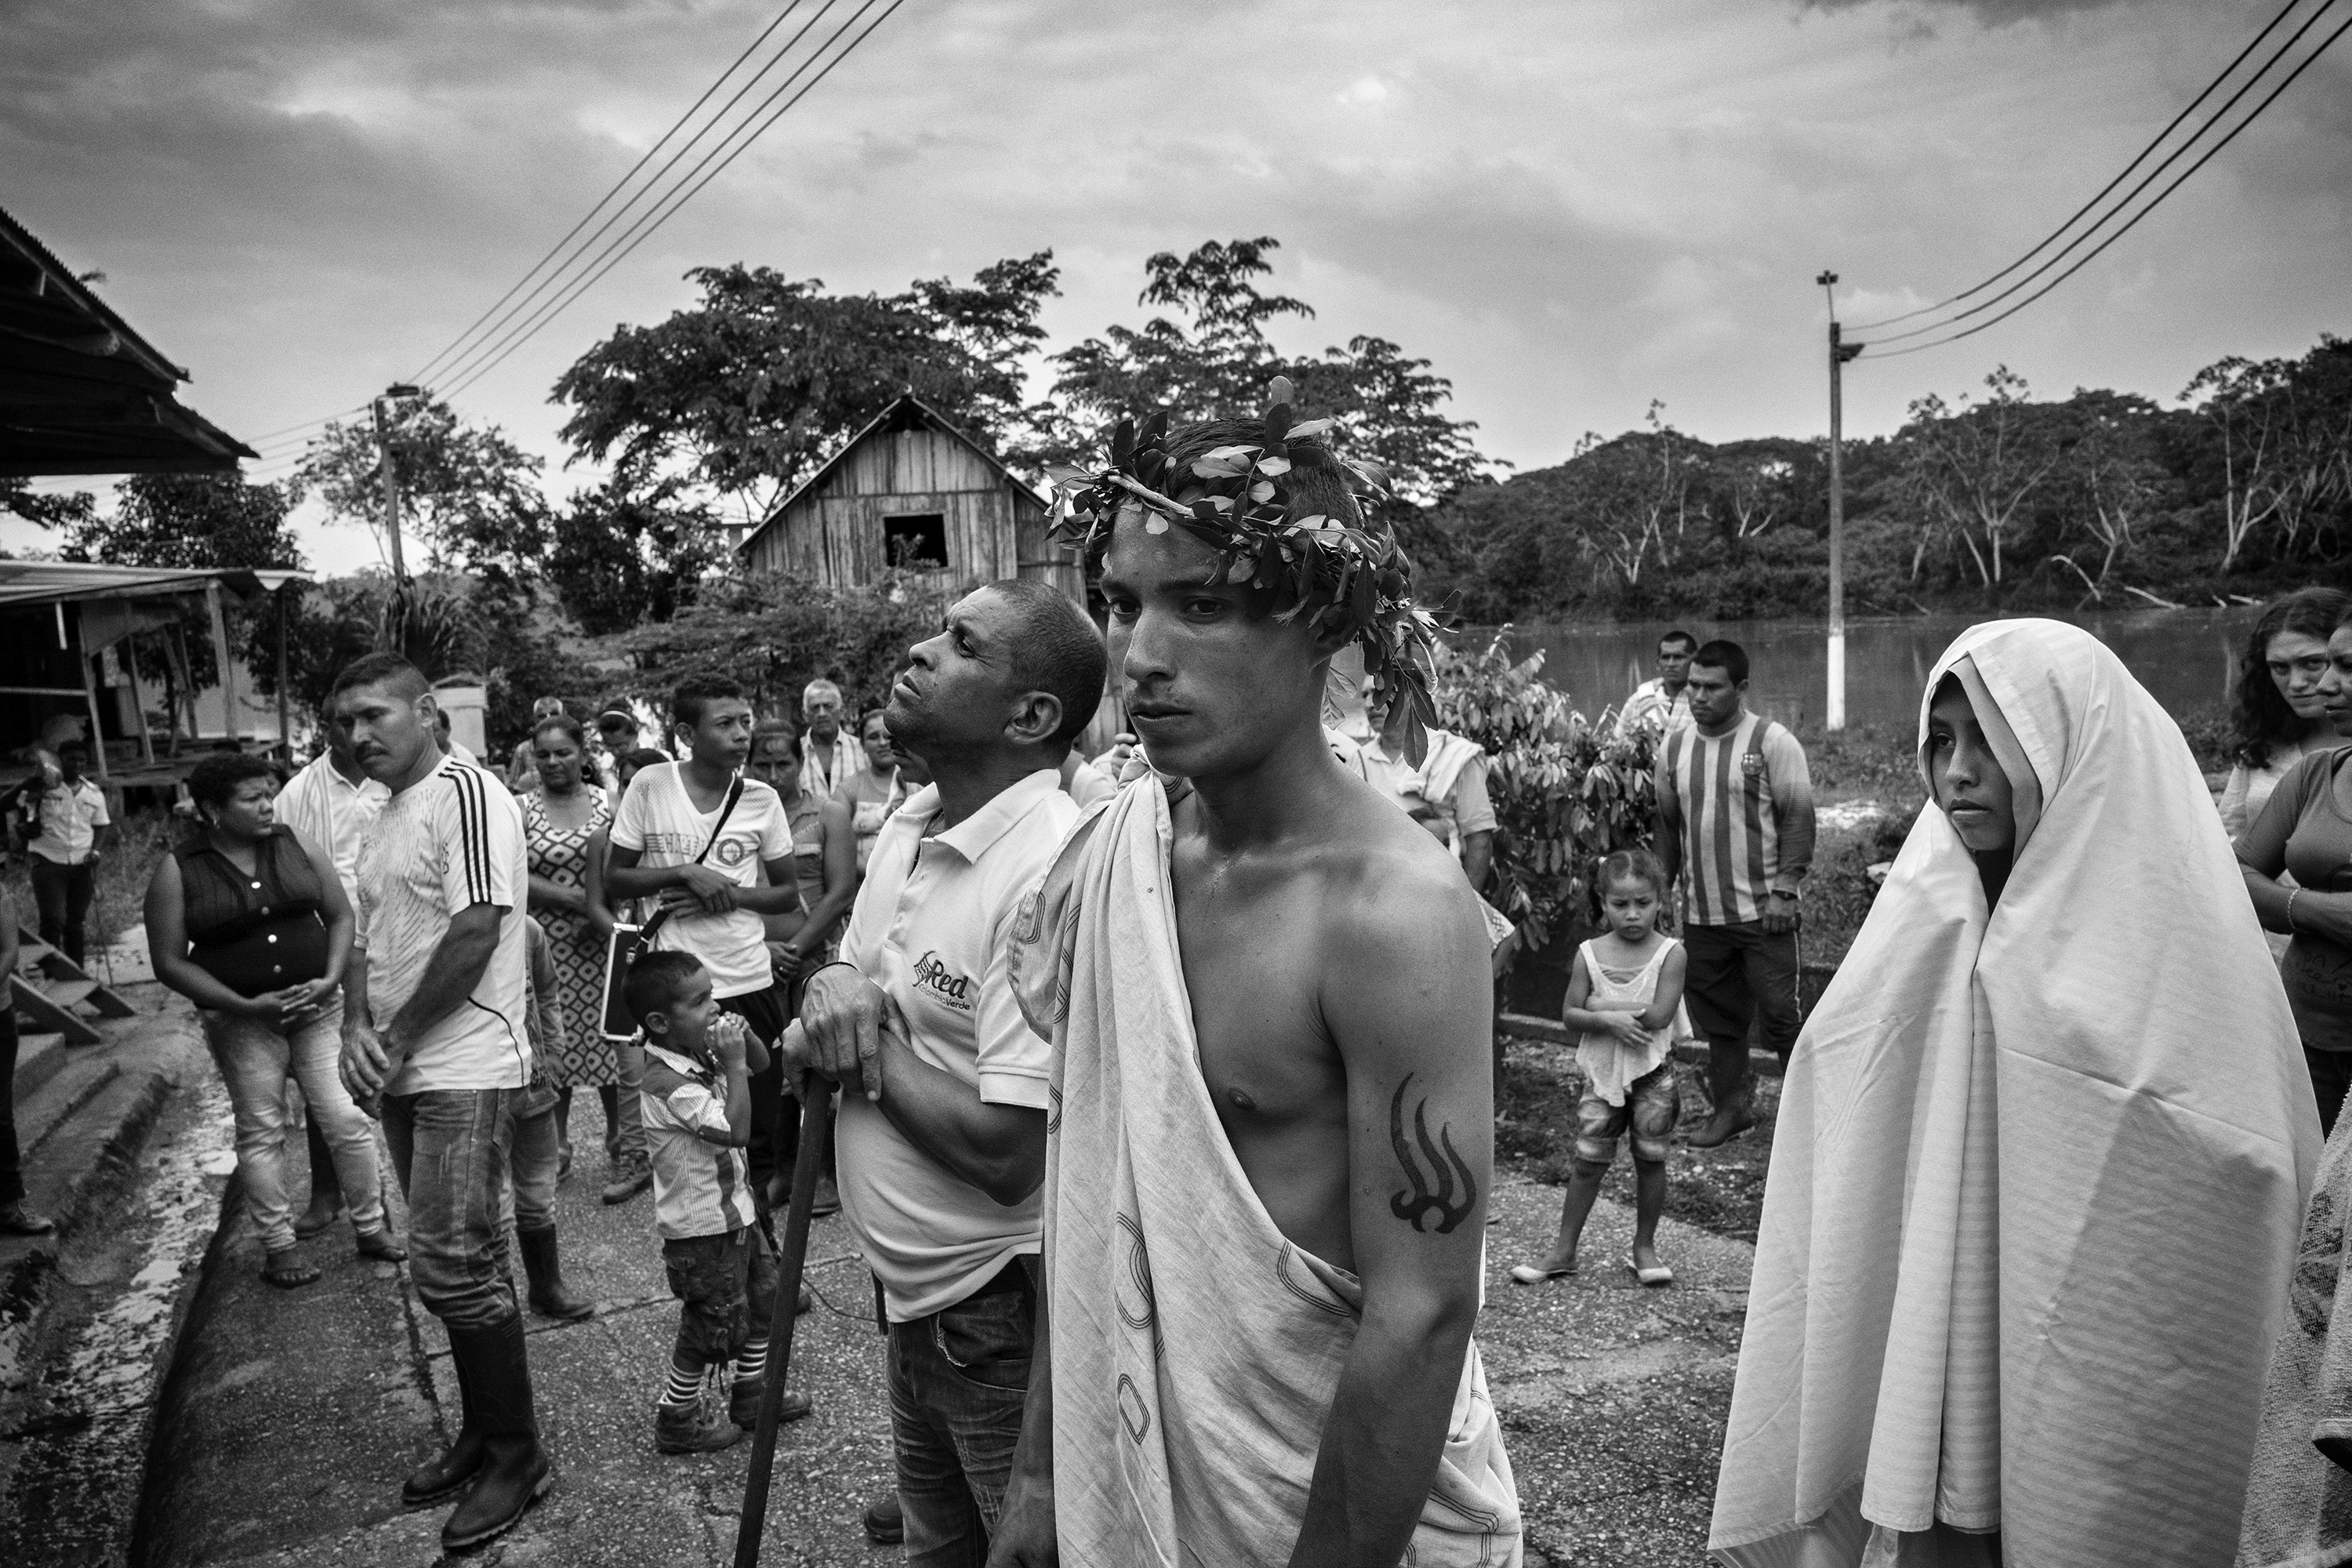 A group of local civilians attend Easter celebrations in the community of Puerto Camelias del Caguan, Caqueta, Colombia, April, 2016.